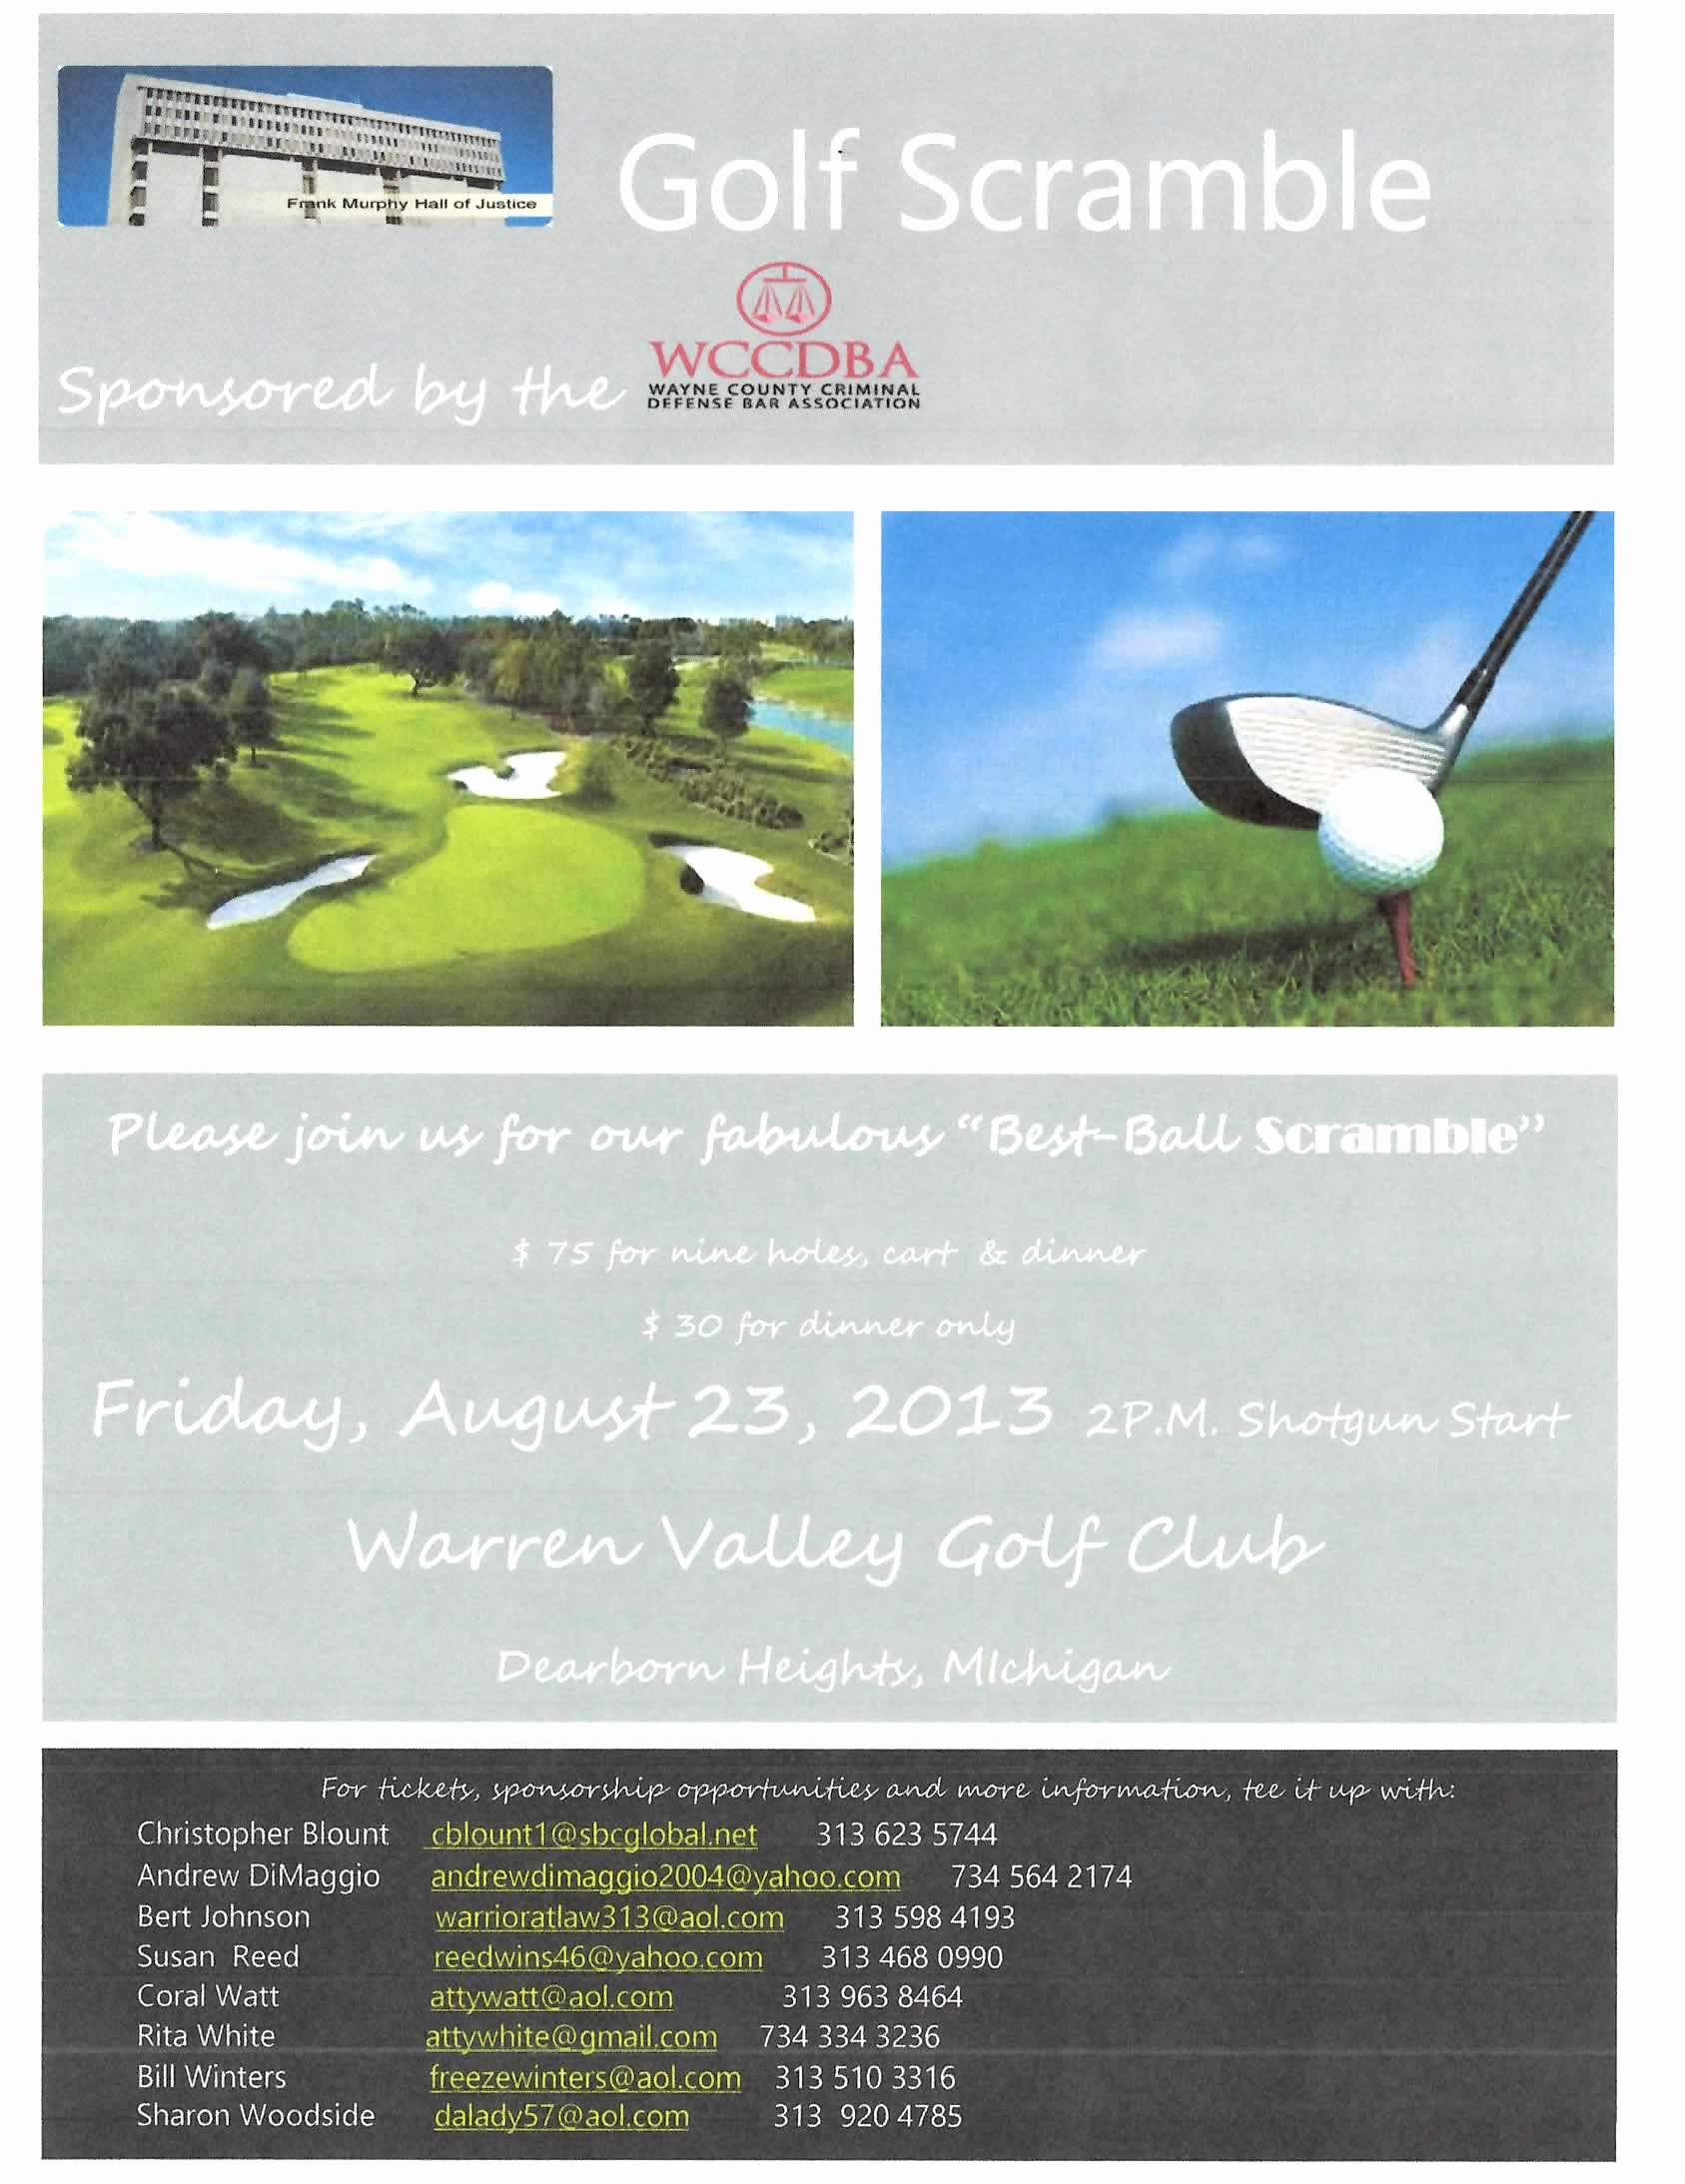 Golf Scramble Flyer Template New Wayne County Criminal Defense Bar association events